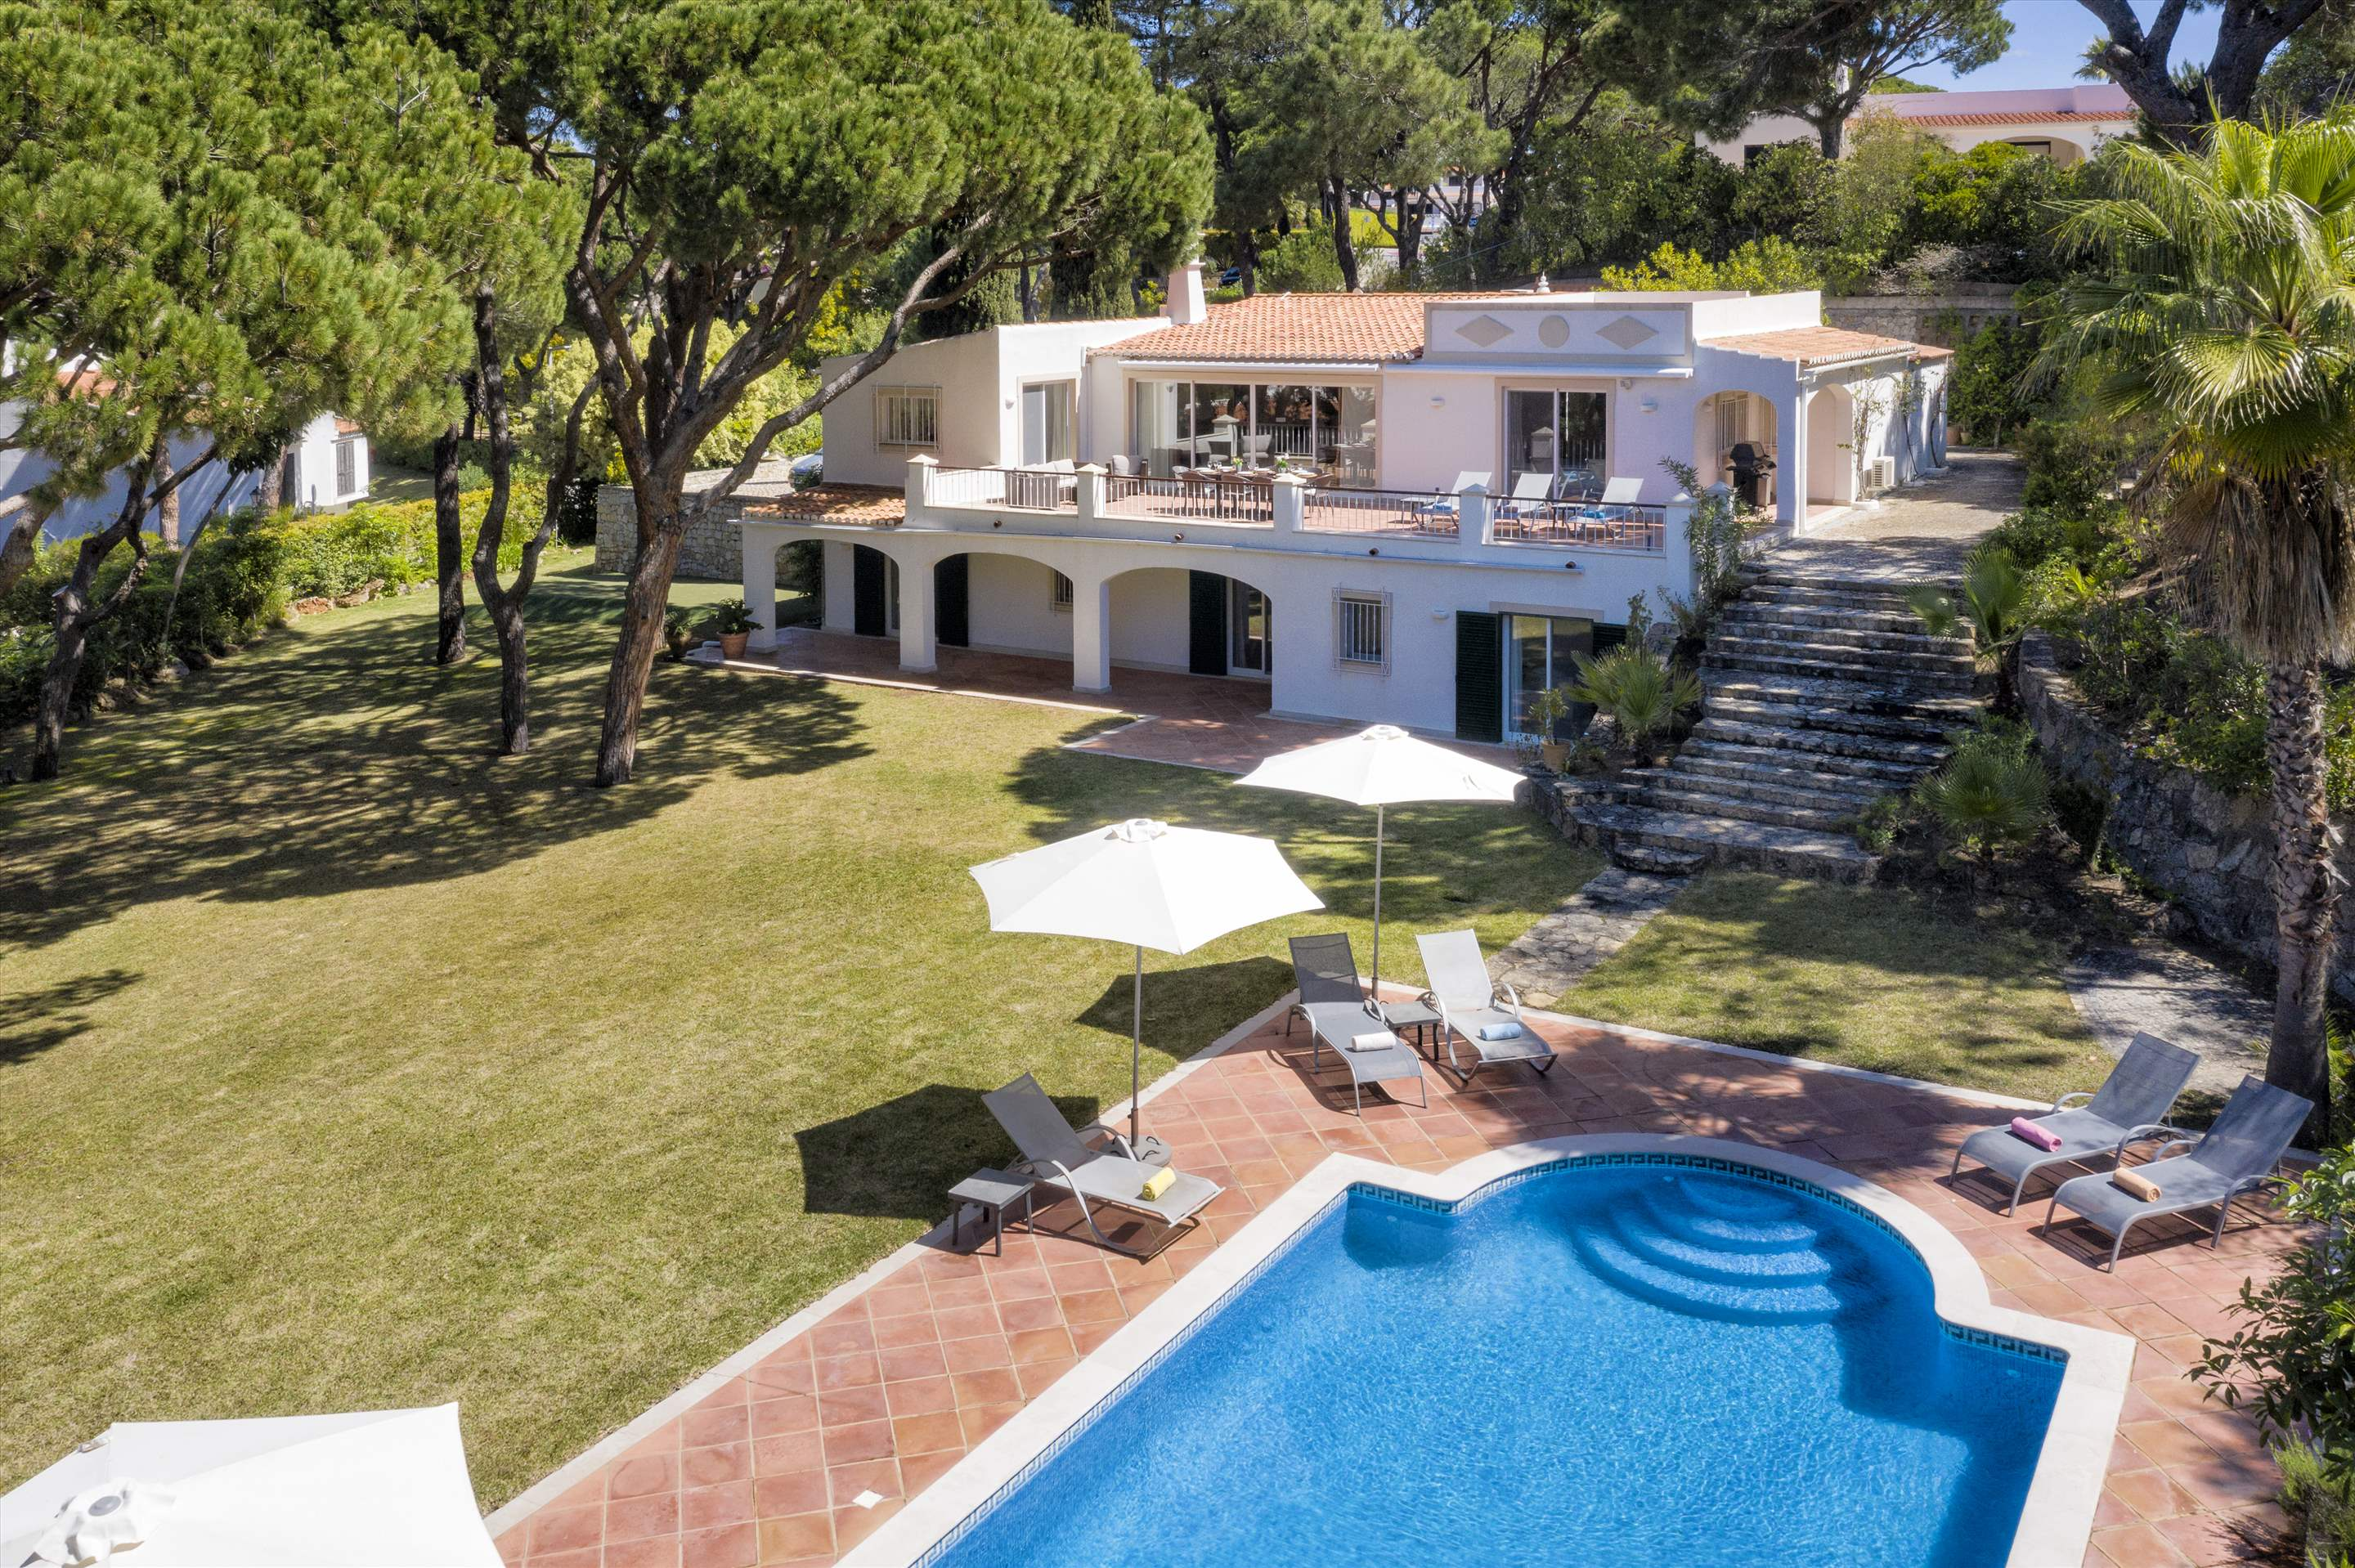 Villa Rosemaria, 5 Bedrooms, 5 bedroom villa in Vale do Lobo, Algarve